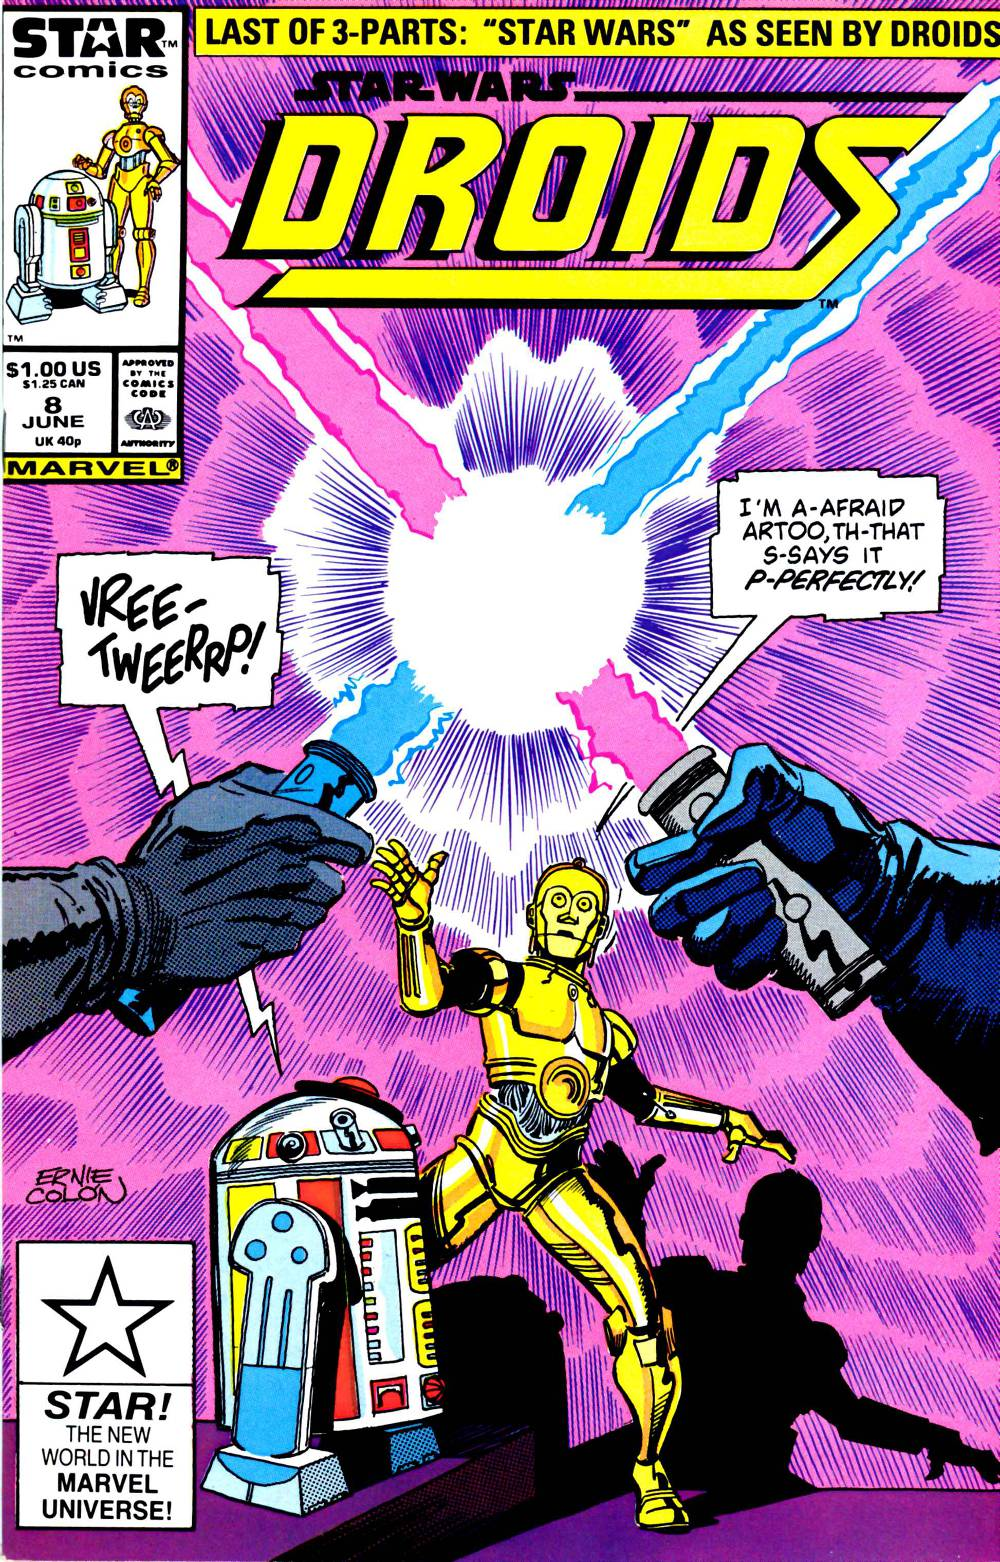 Droids #8 - Star Wars According to the Droids, Part 3